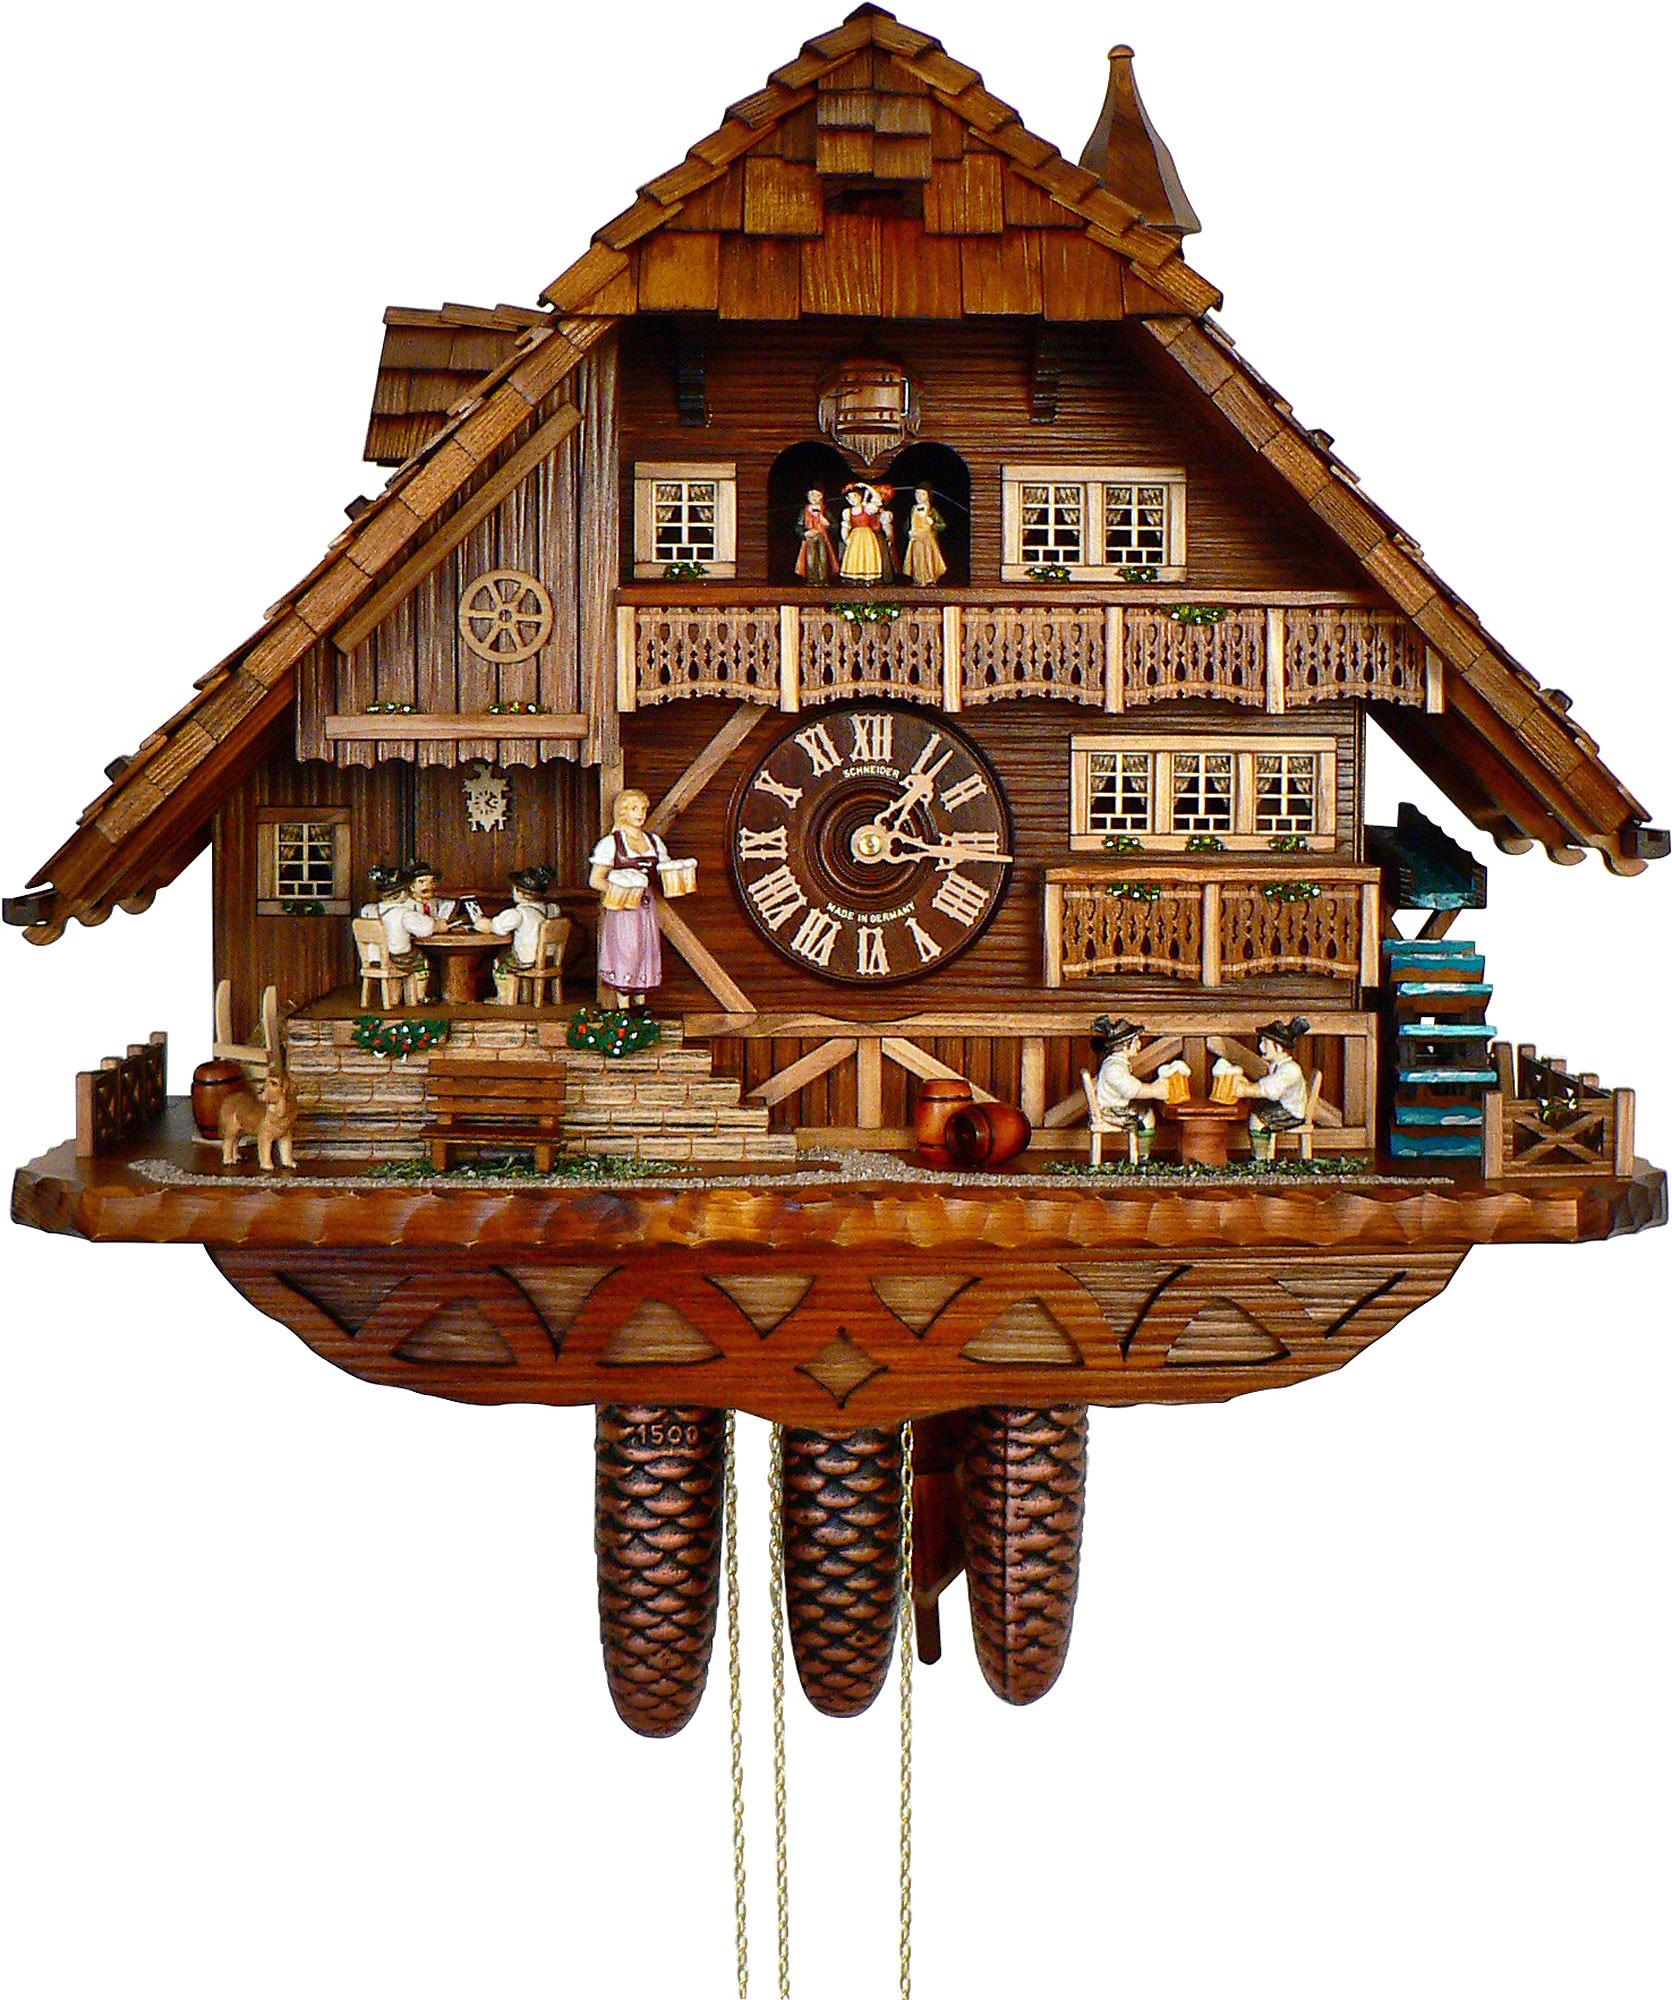 Cuckoo clock 8 day movement chalet style 52cm by anton How to make a cuckoo clock